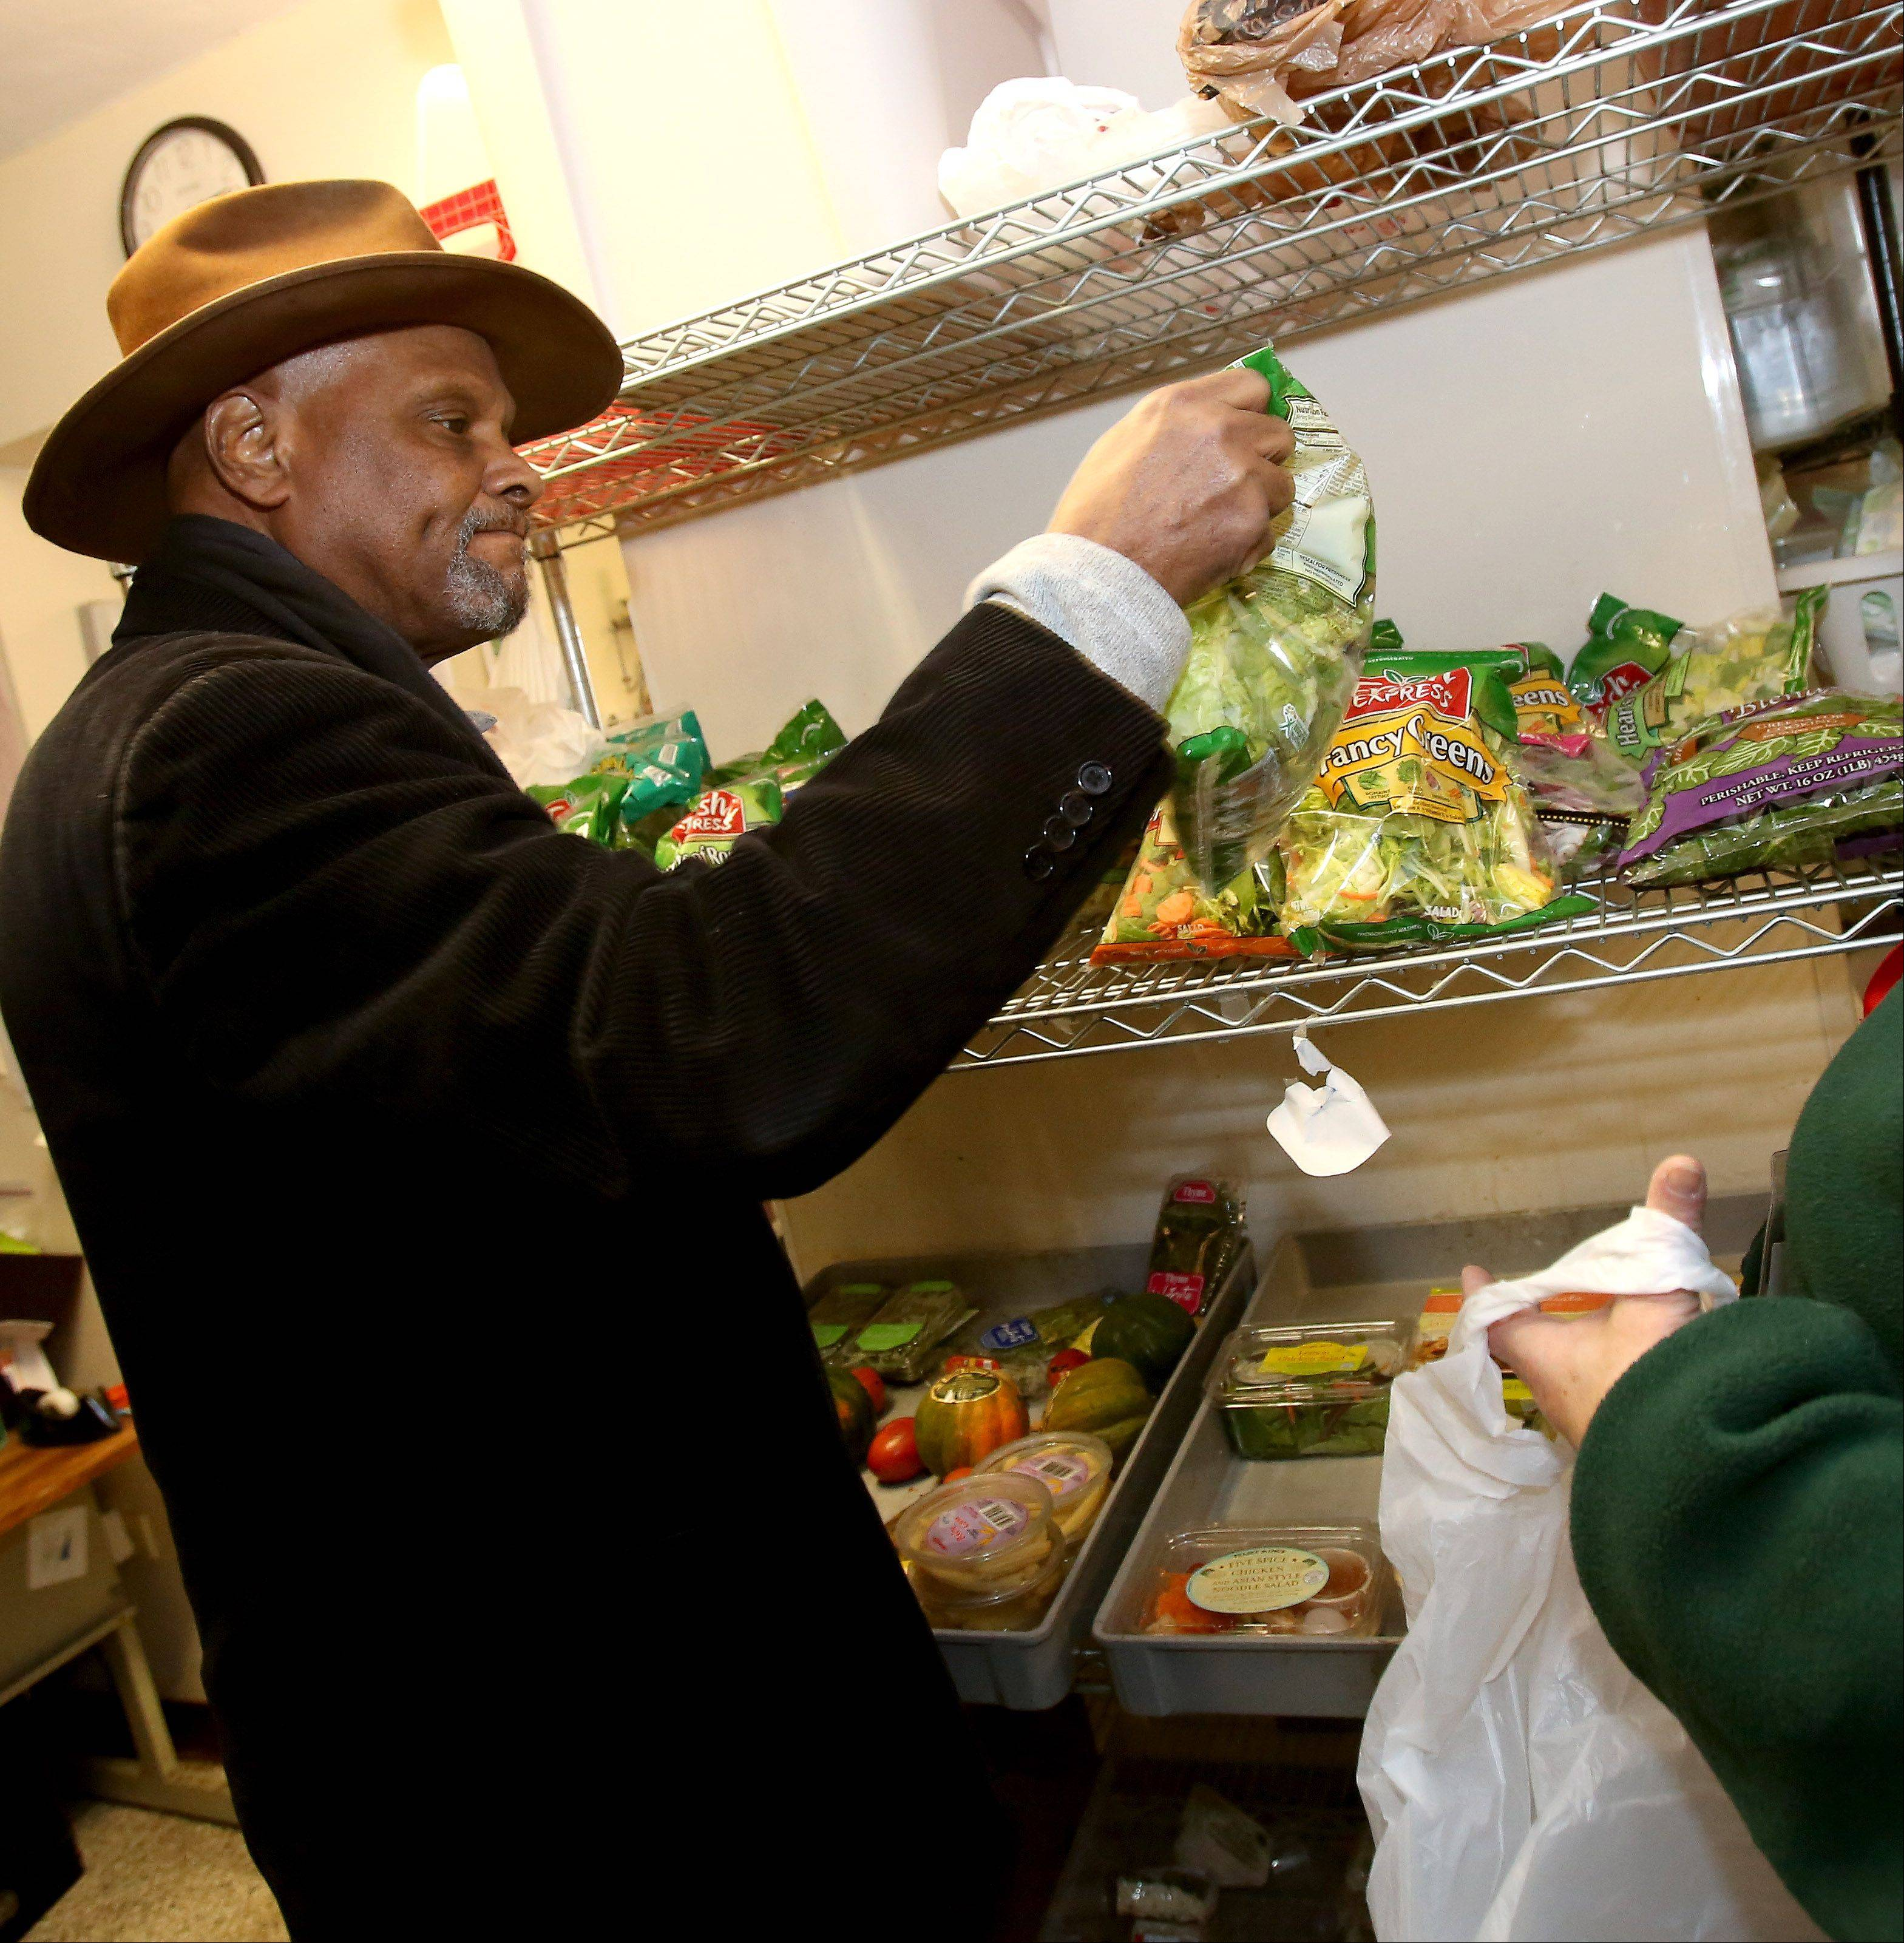 Vince Willis of Naperville picks out some lettuce during a visit to the food pantry at the People's Resource Center in Wheaton Tuesday.